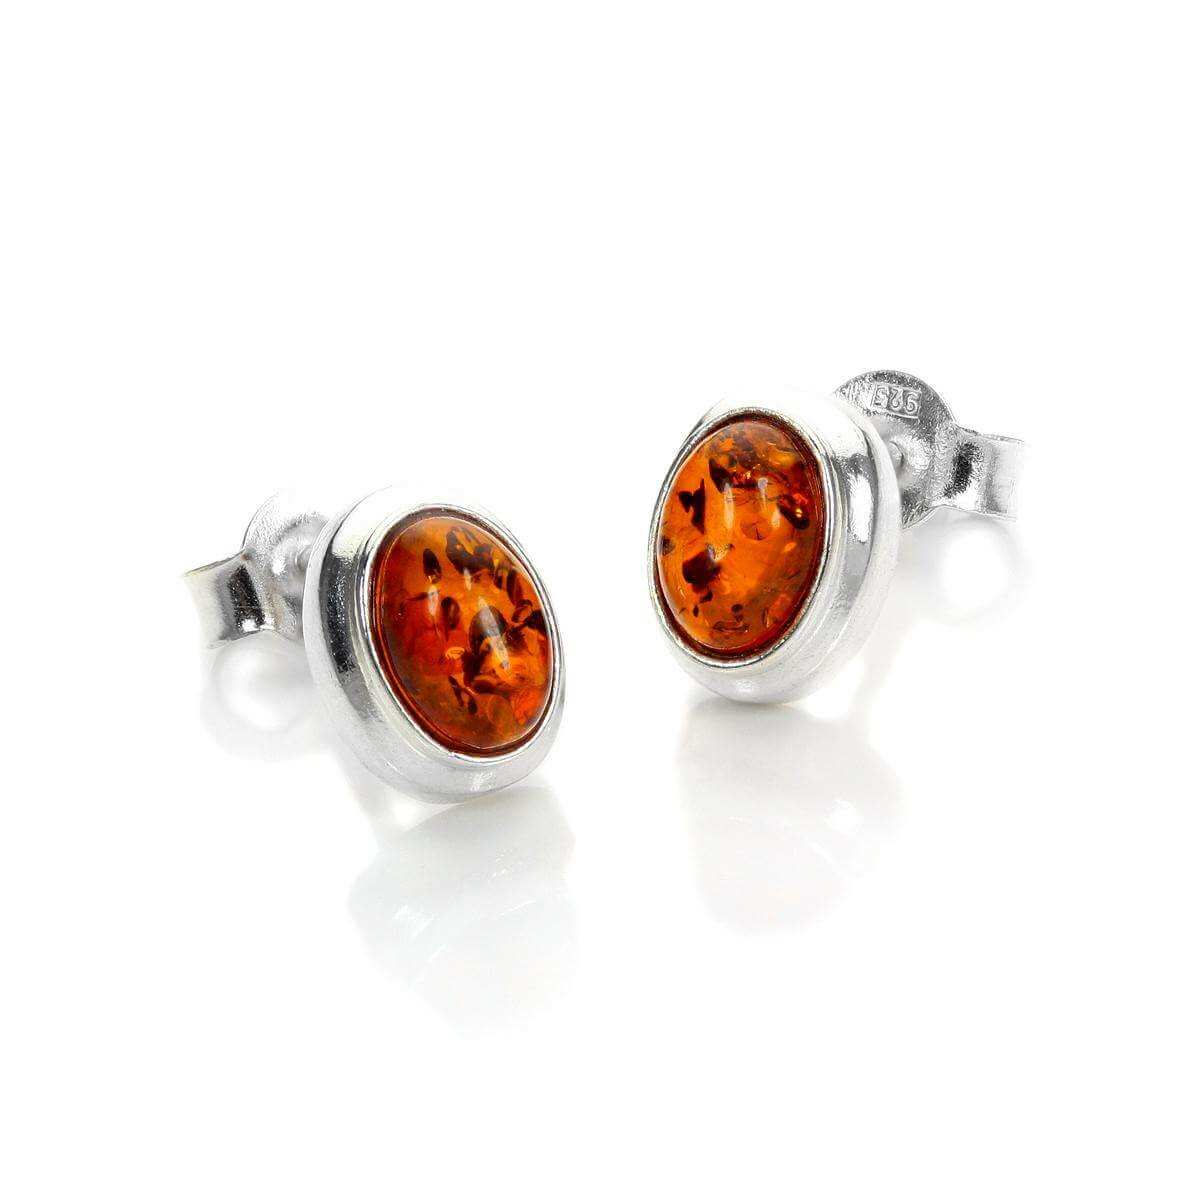 Sterling Silver & Baltic Amber Oval Stud Earrings